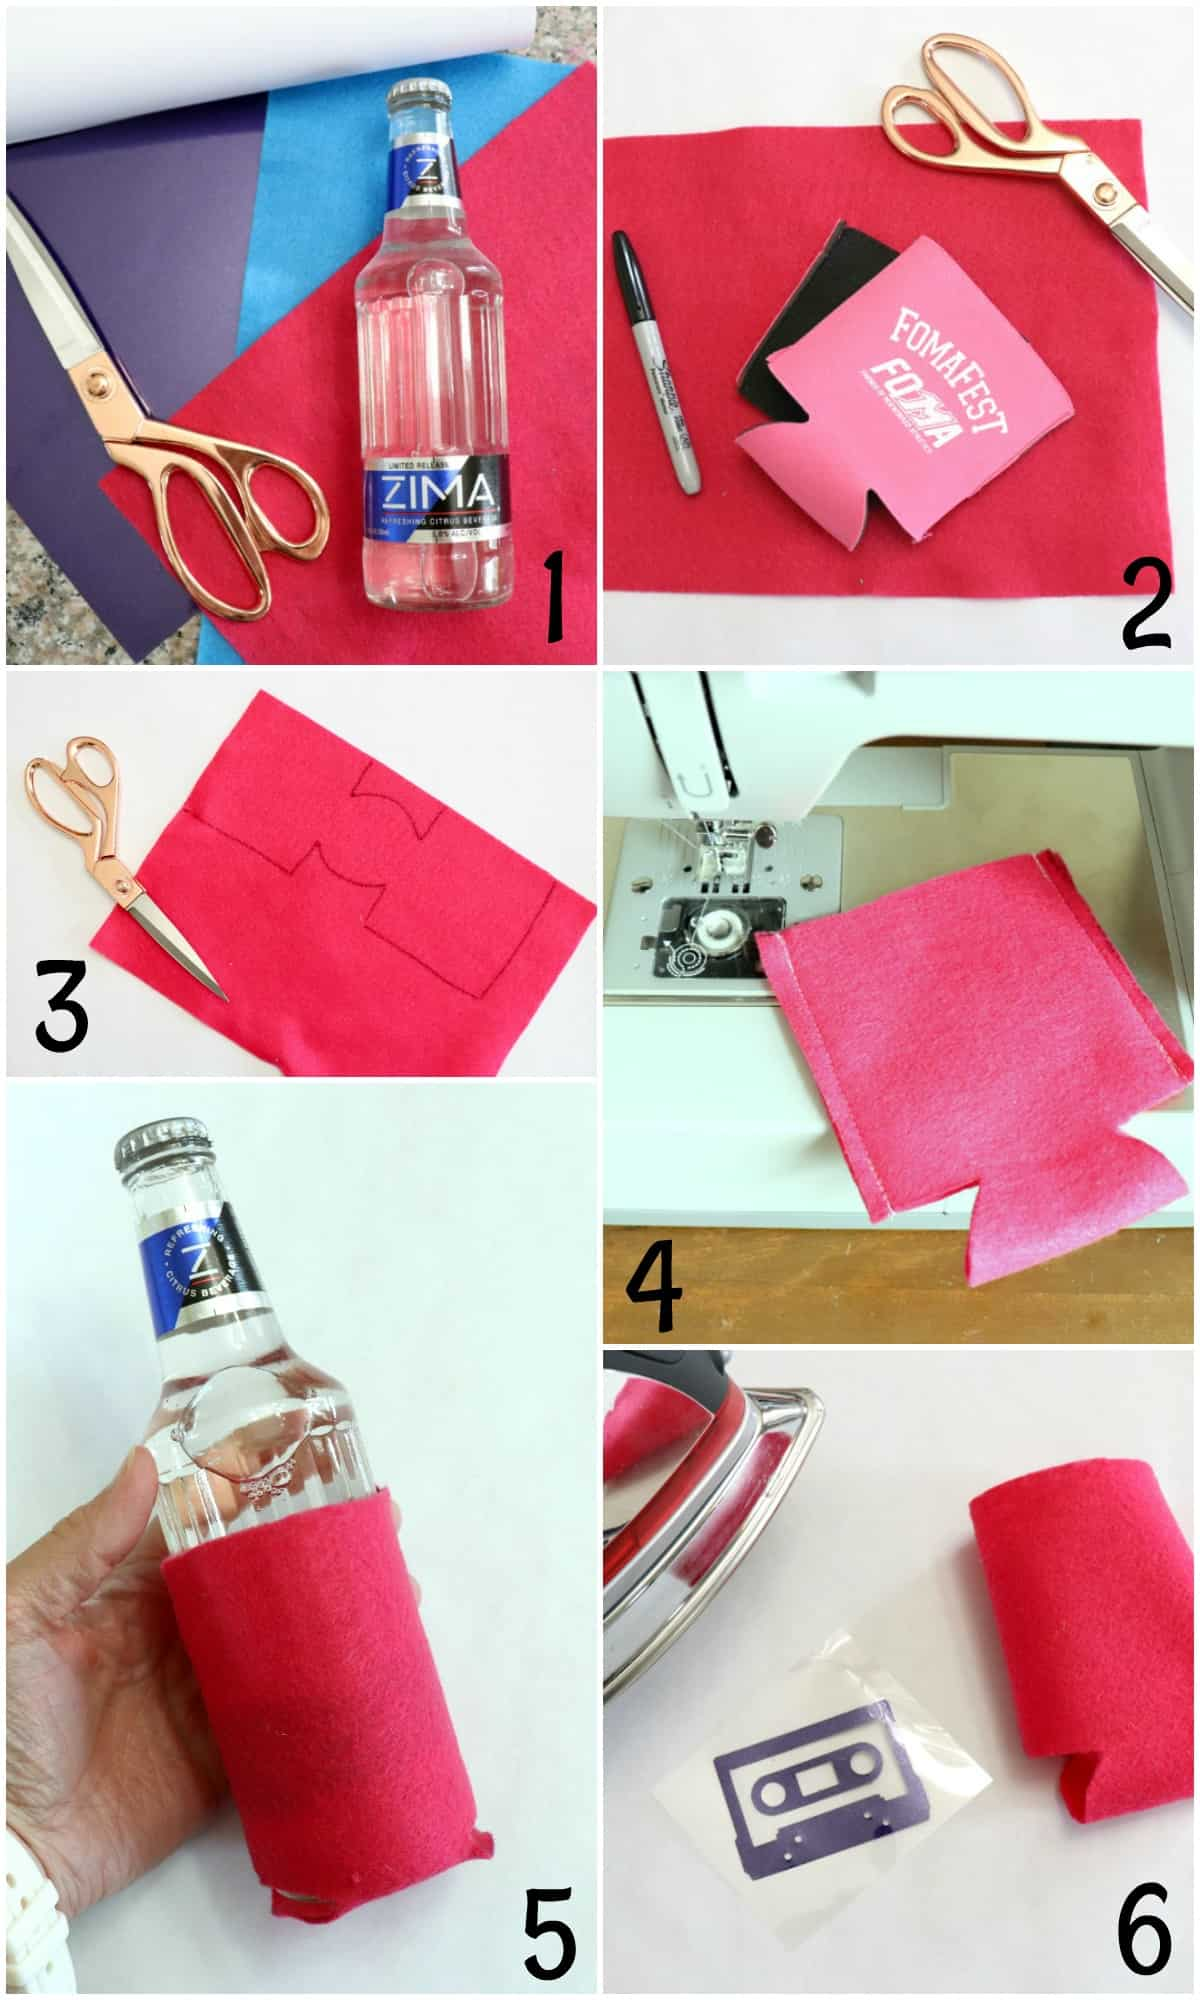 Step by step how to sew a koozie